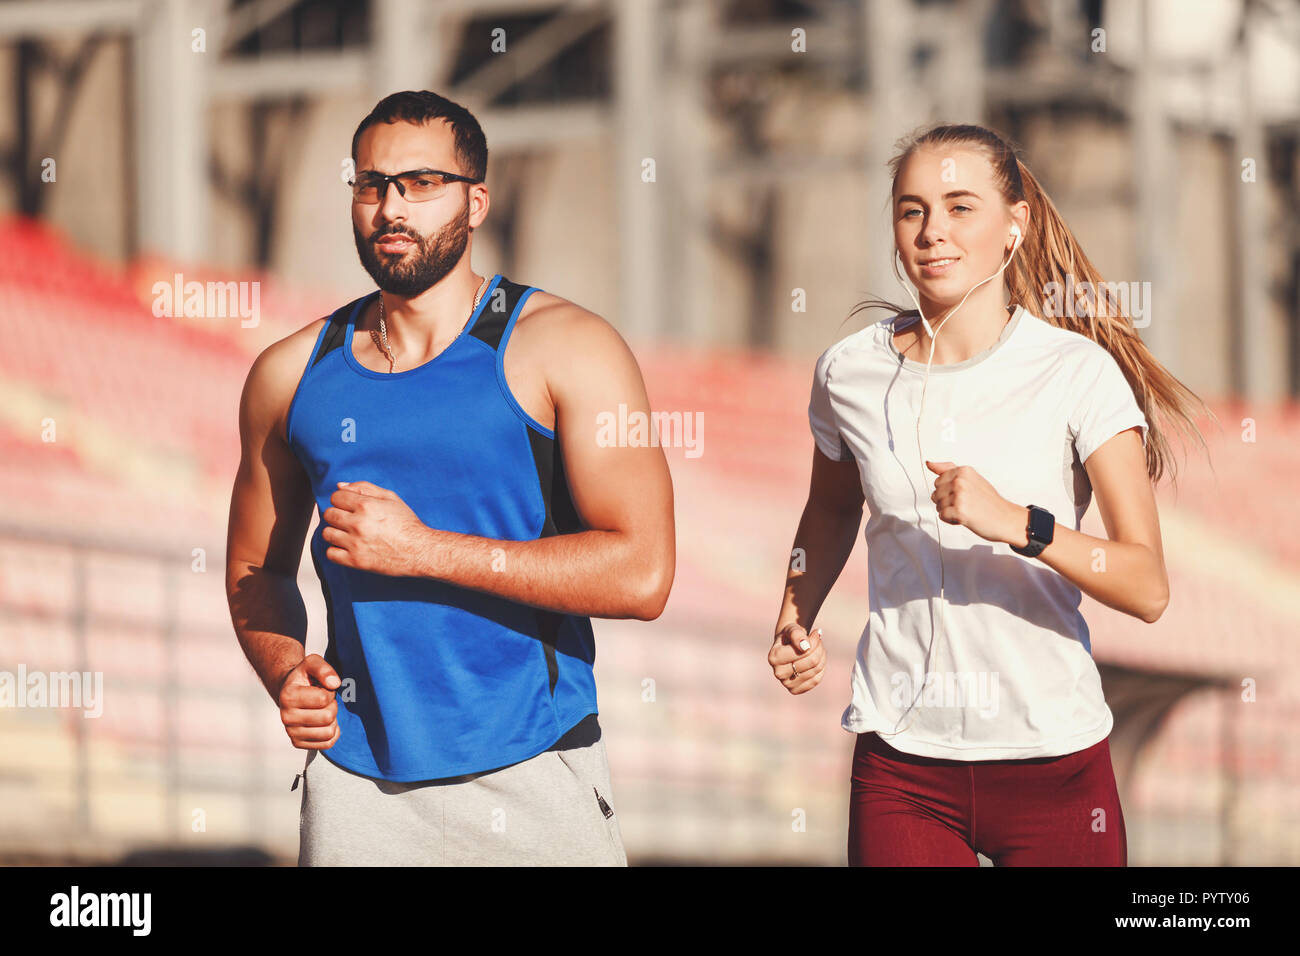 Sportish pretty blonde long haired woman in white t-shirt and multicultural handsome bearded man in blue shirt jogging at the football stadium outdoor, healthy lifestyle and people concept - Stock Photo